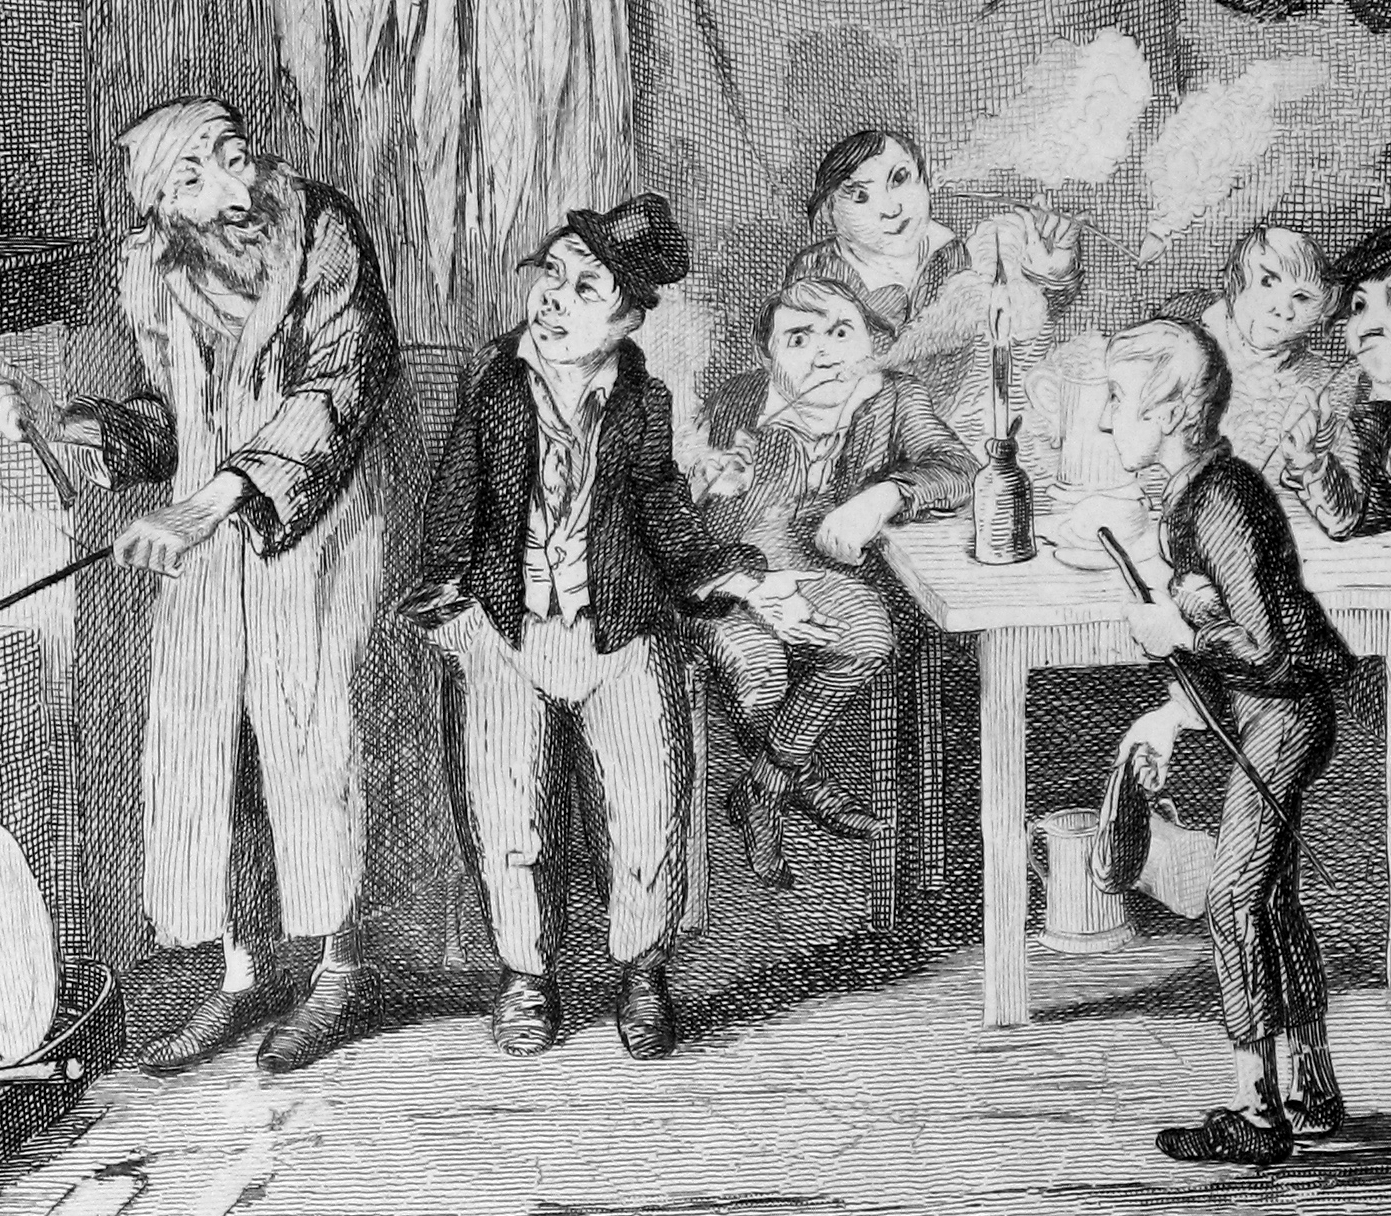 [George Cruikshank supplied all 24 illustrations for Oliver Twist originally published in monthly parts from February 1837 to April 1839.]